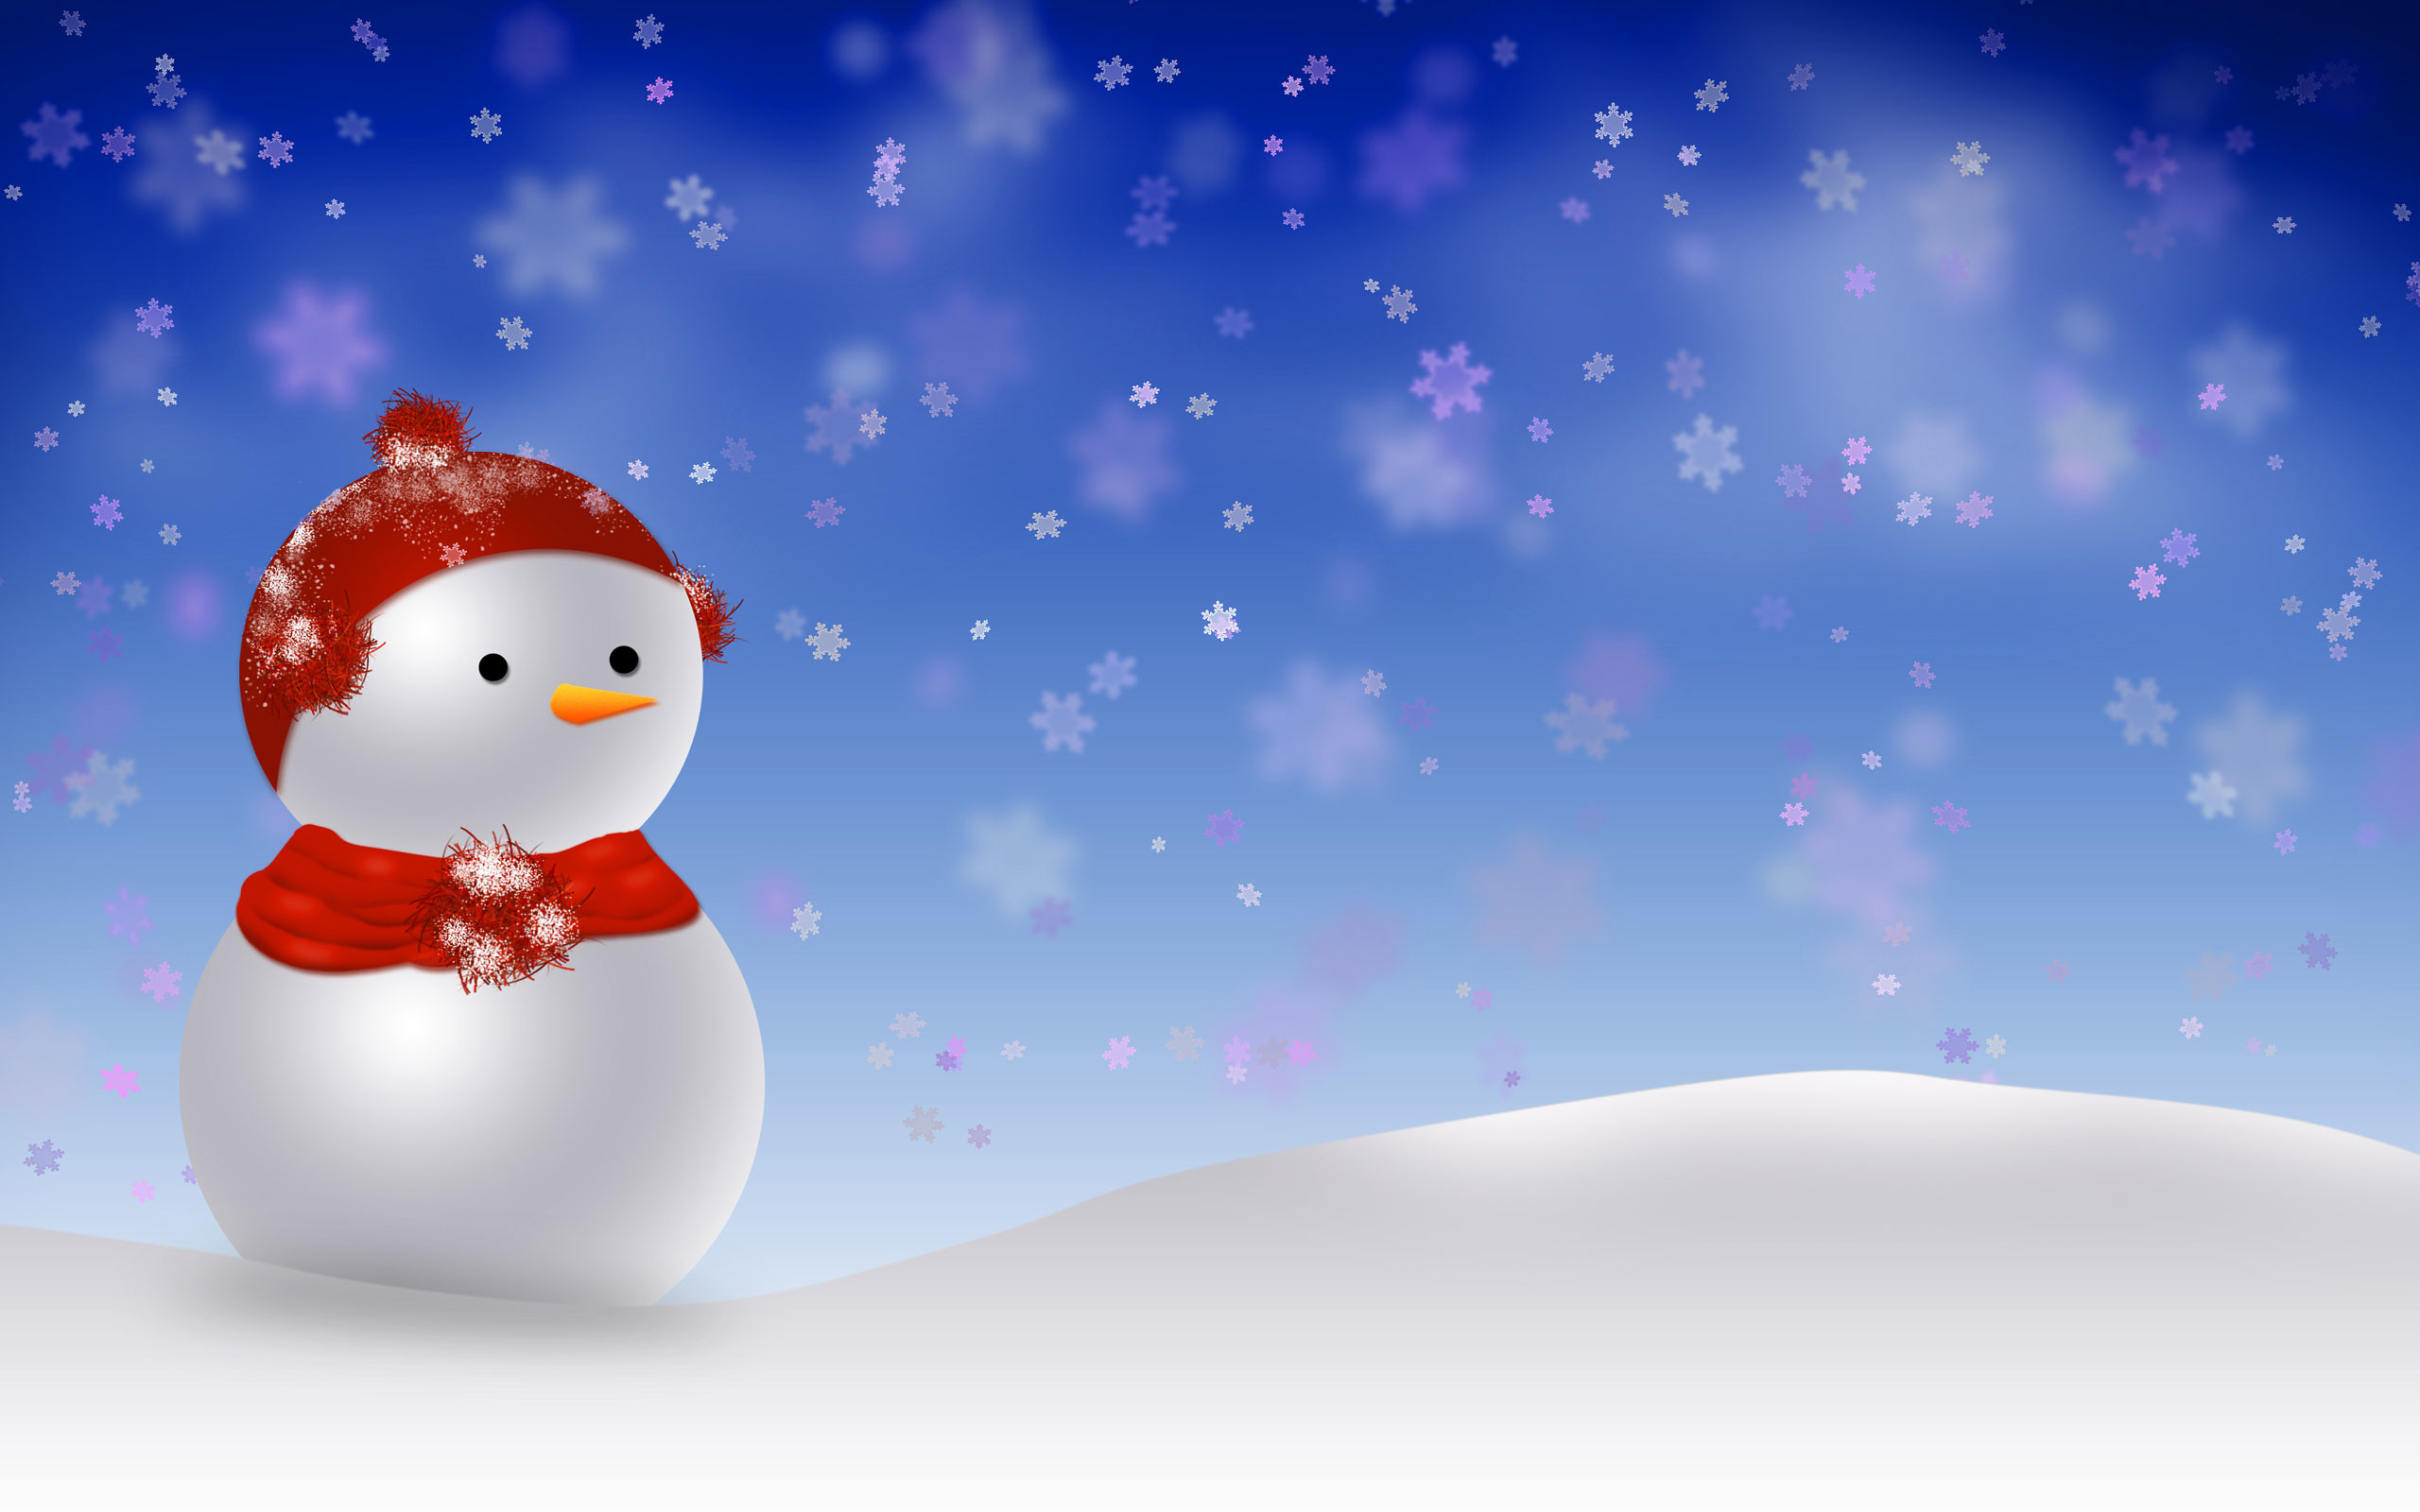 Animated Christmas Wallpapers For We are sure that each of you have your  own favourite animated Christmas wallpaper and you love it makes you feel  special …